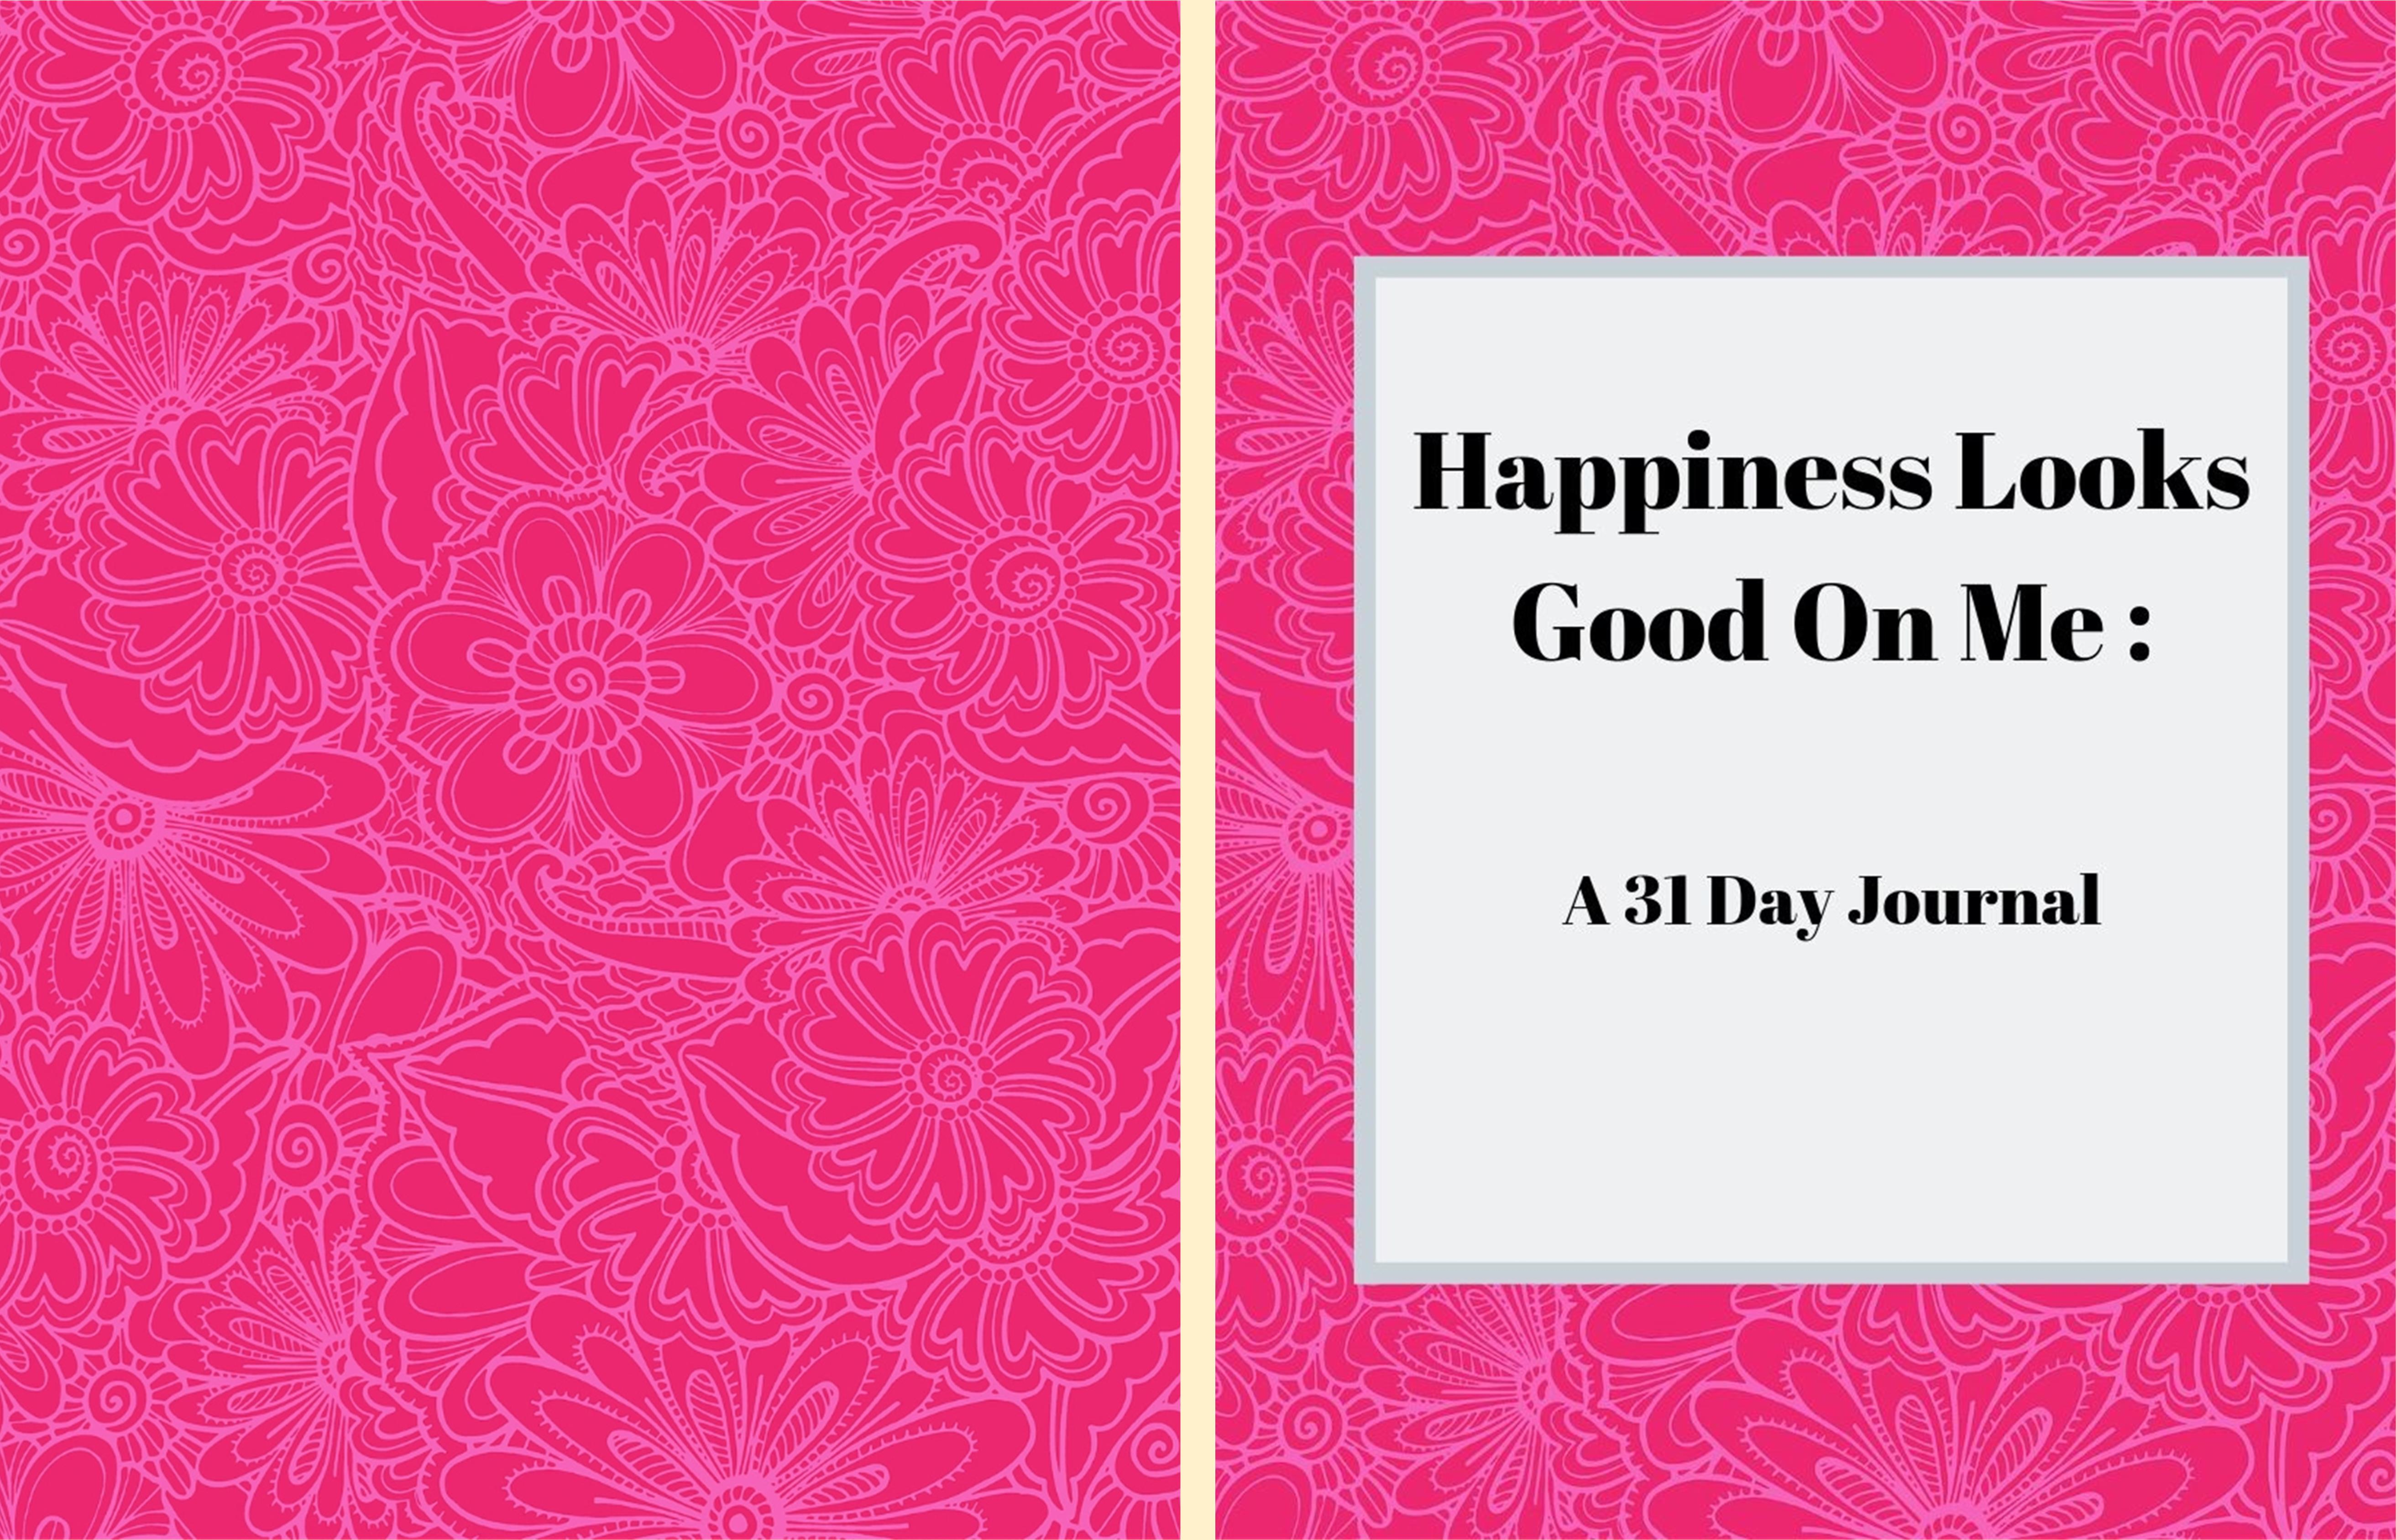 Happiness Looks Good On Me cover image